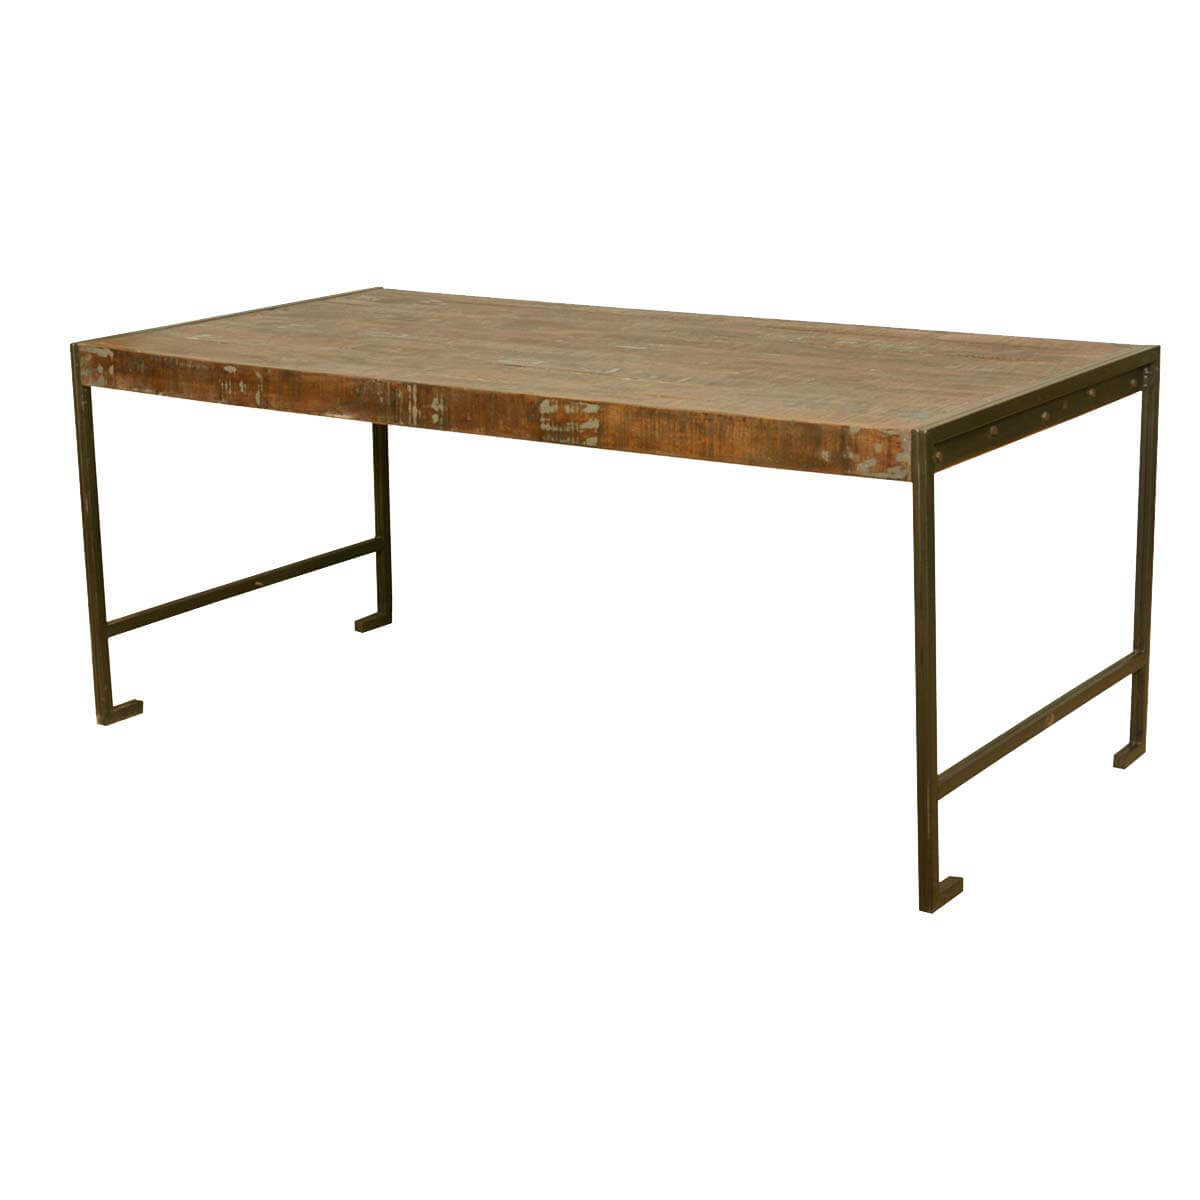 Philadelphia modern rustic reclaimed wood industrial Rustic wood dining table